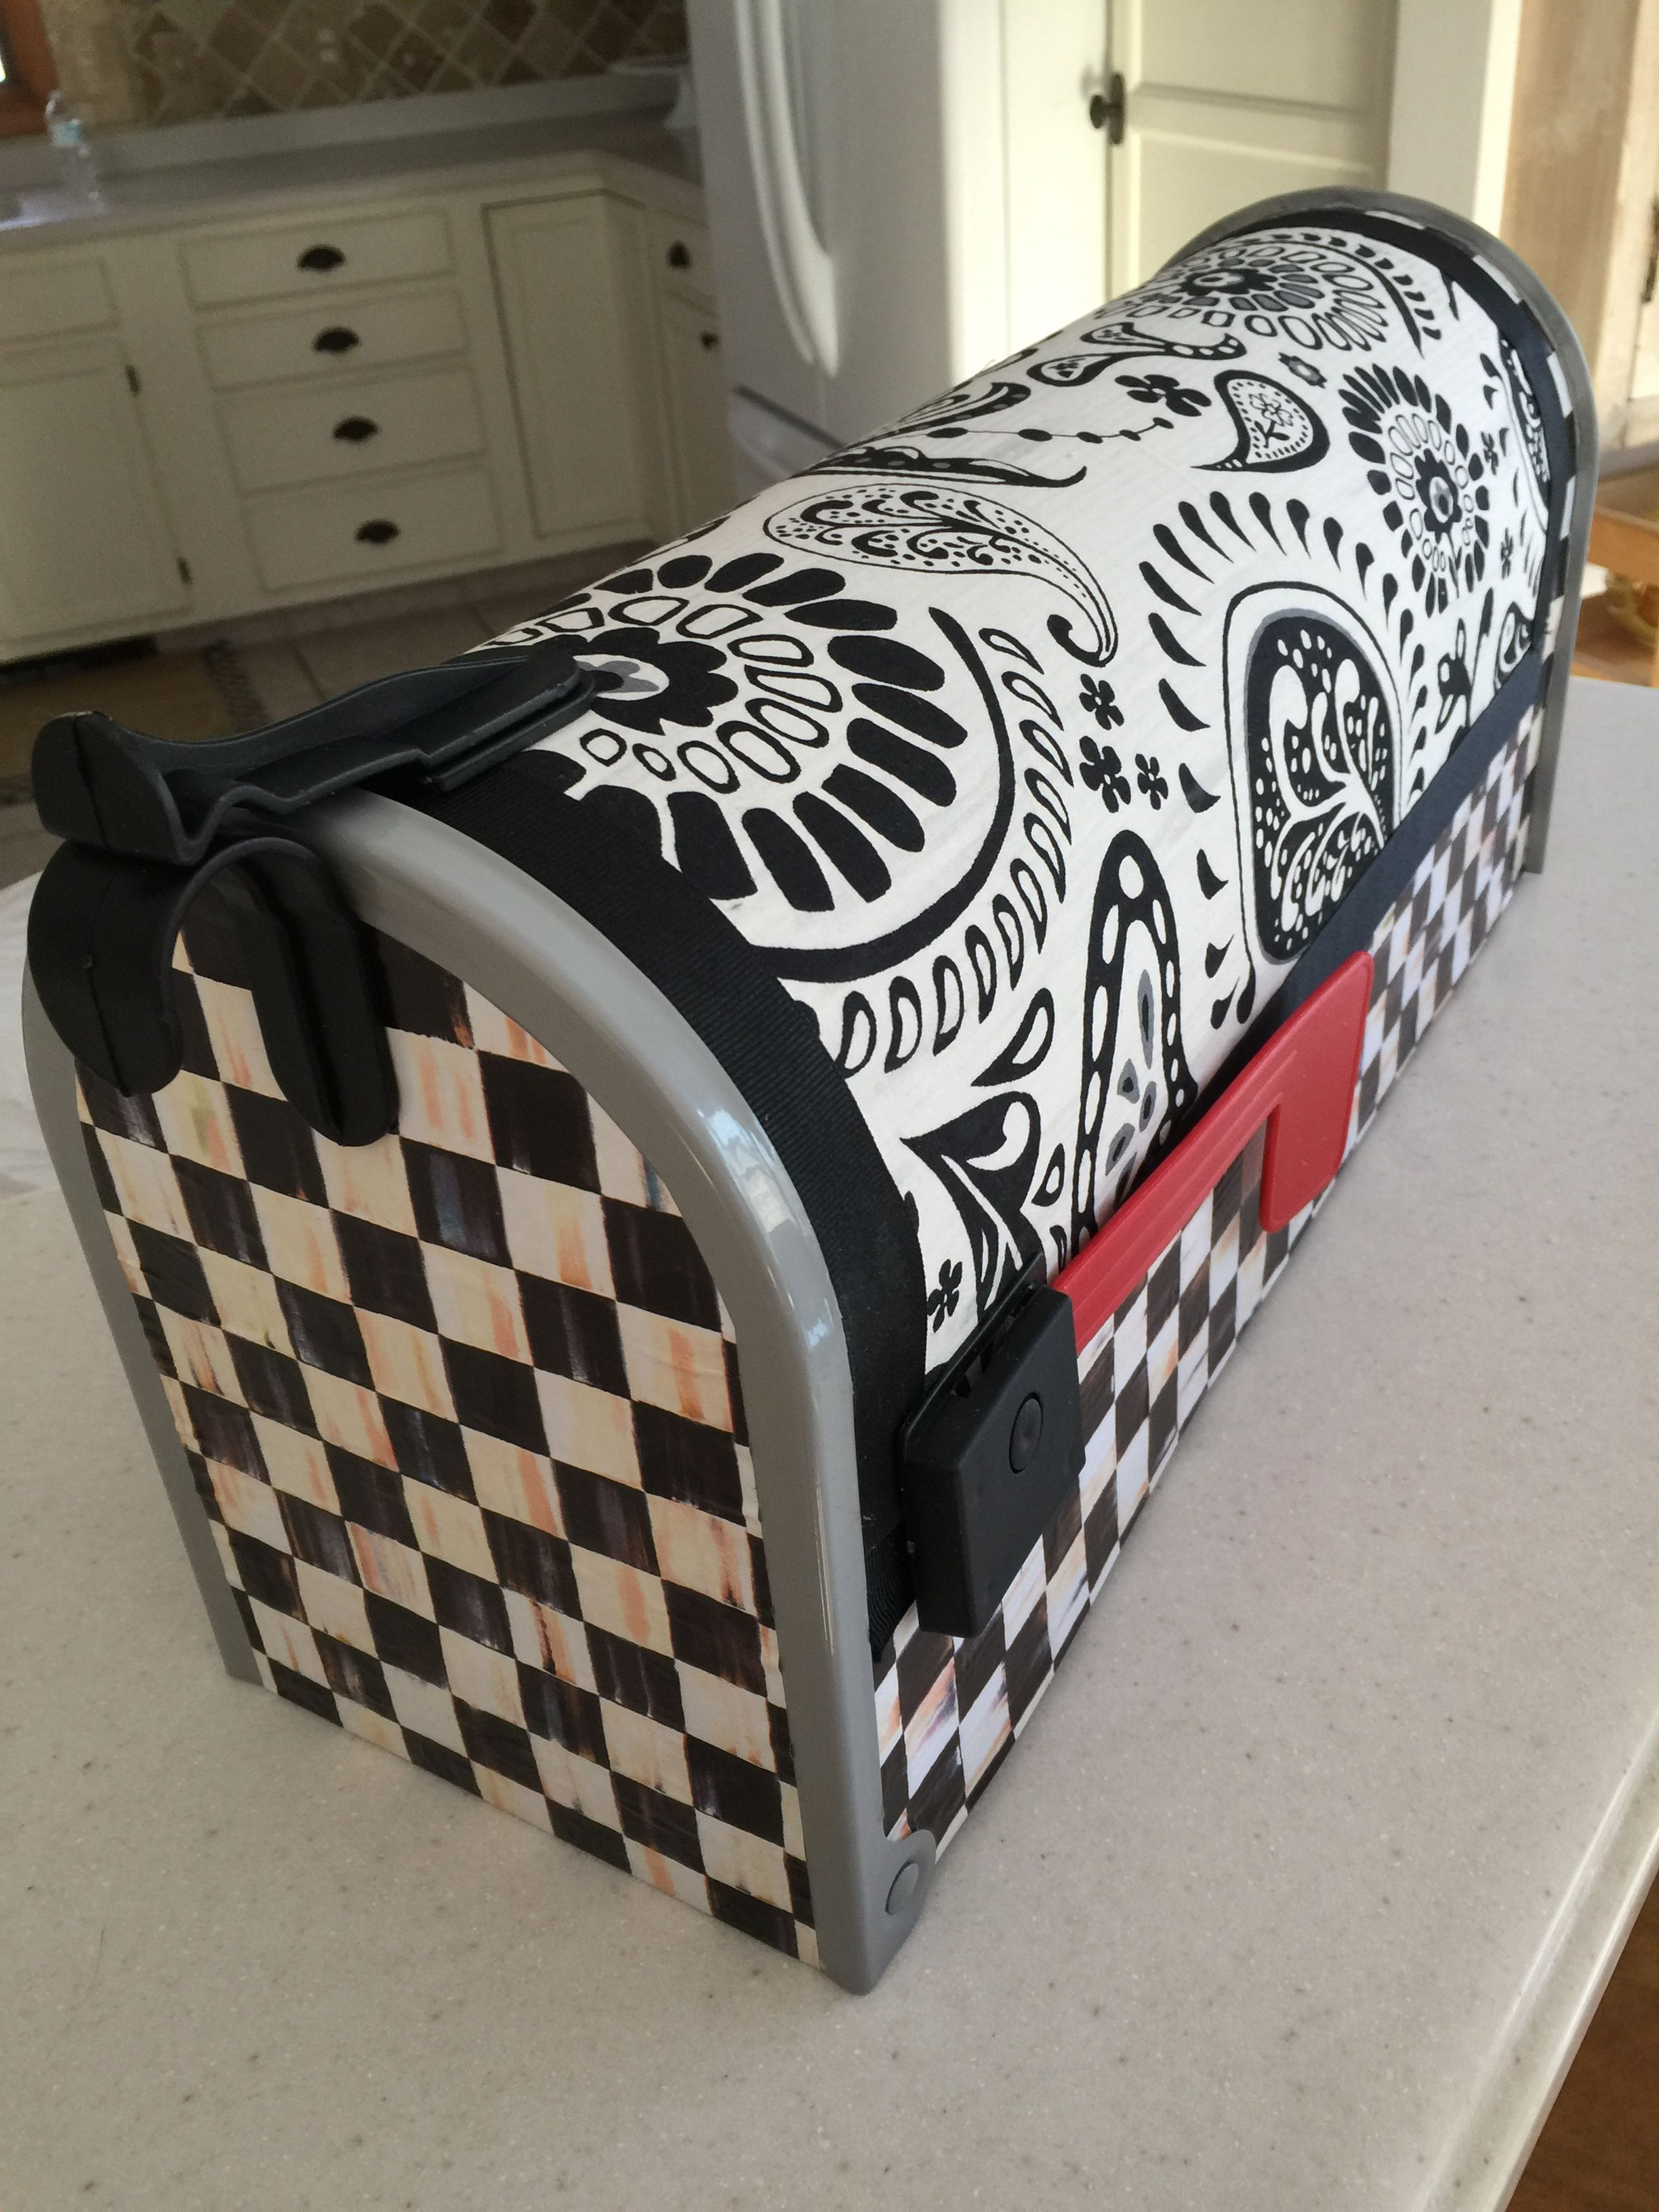 Pin by Kellee Keating-Kucewicz on Mackenzie childs ...  Funky Painted Mailboxes